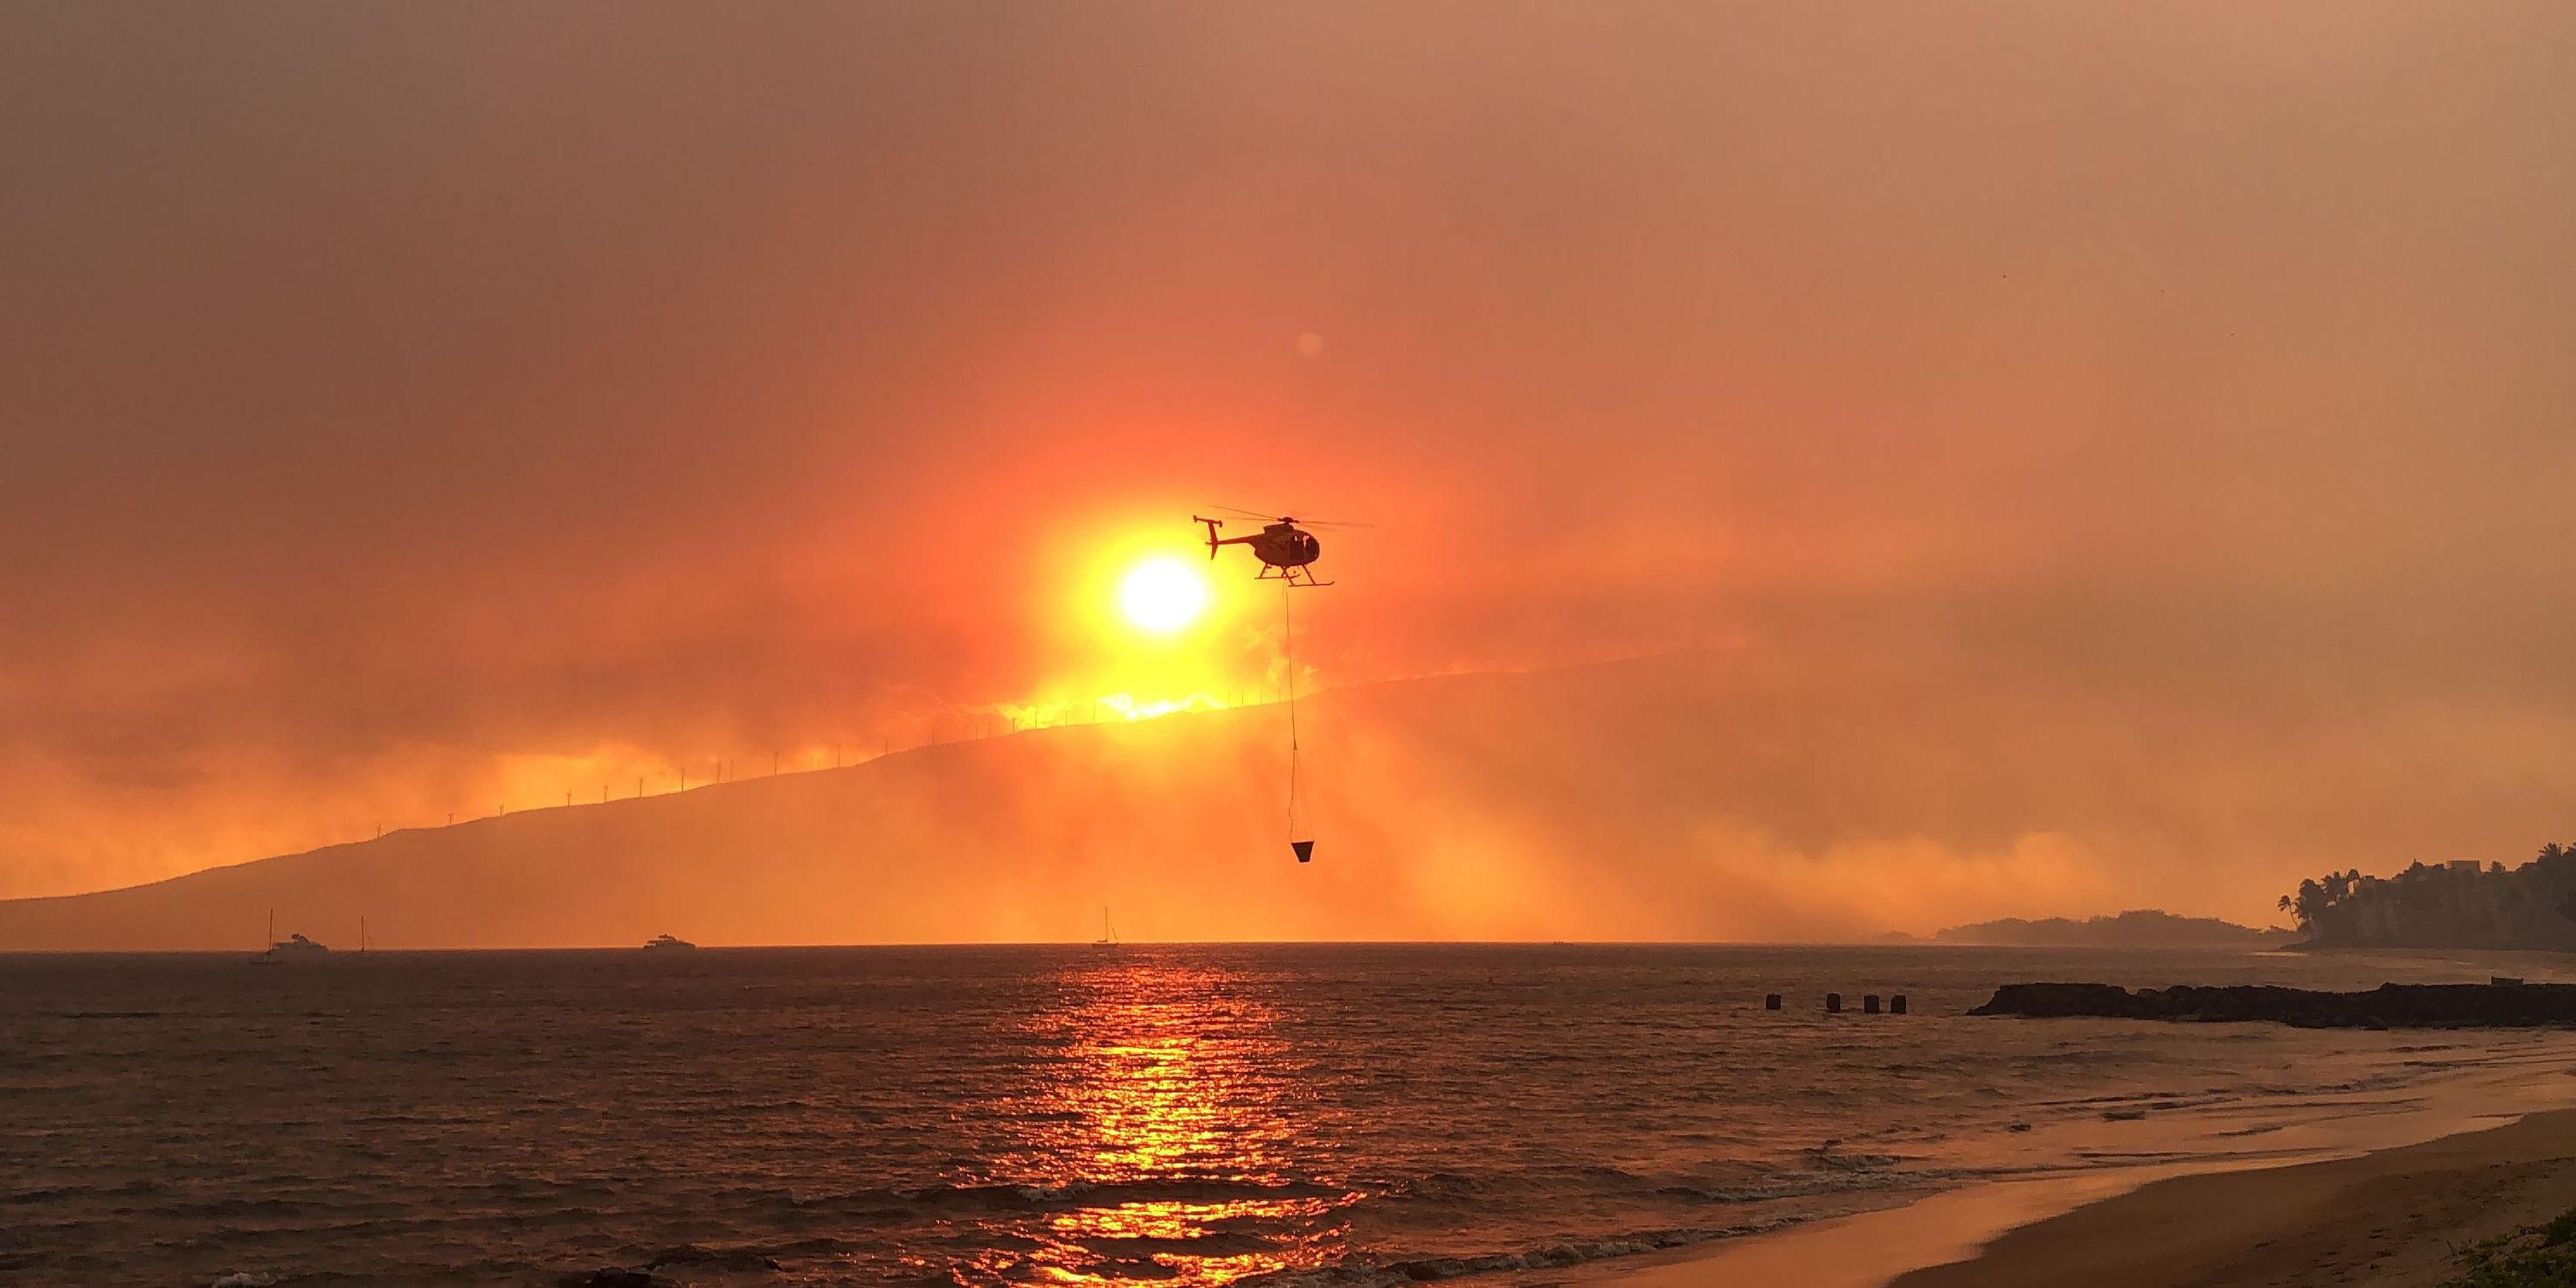 Suspect arrested in Maui arson incident that triggered massive wildfire